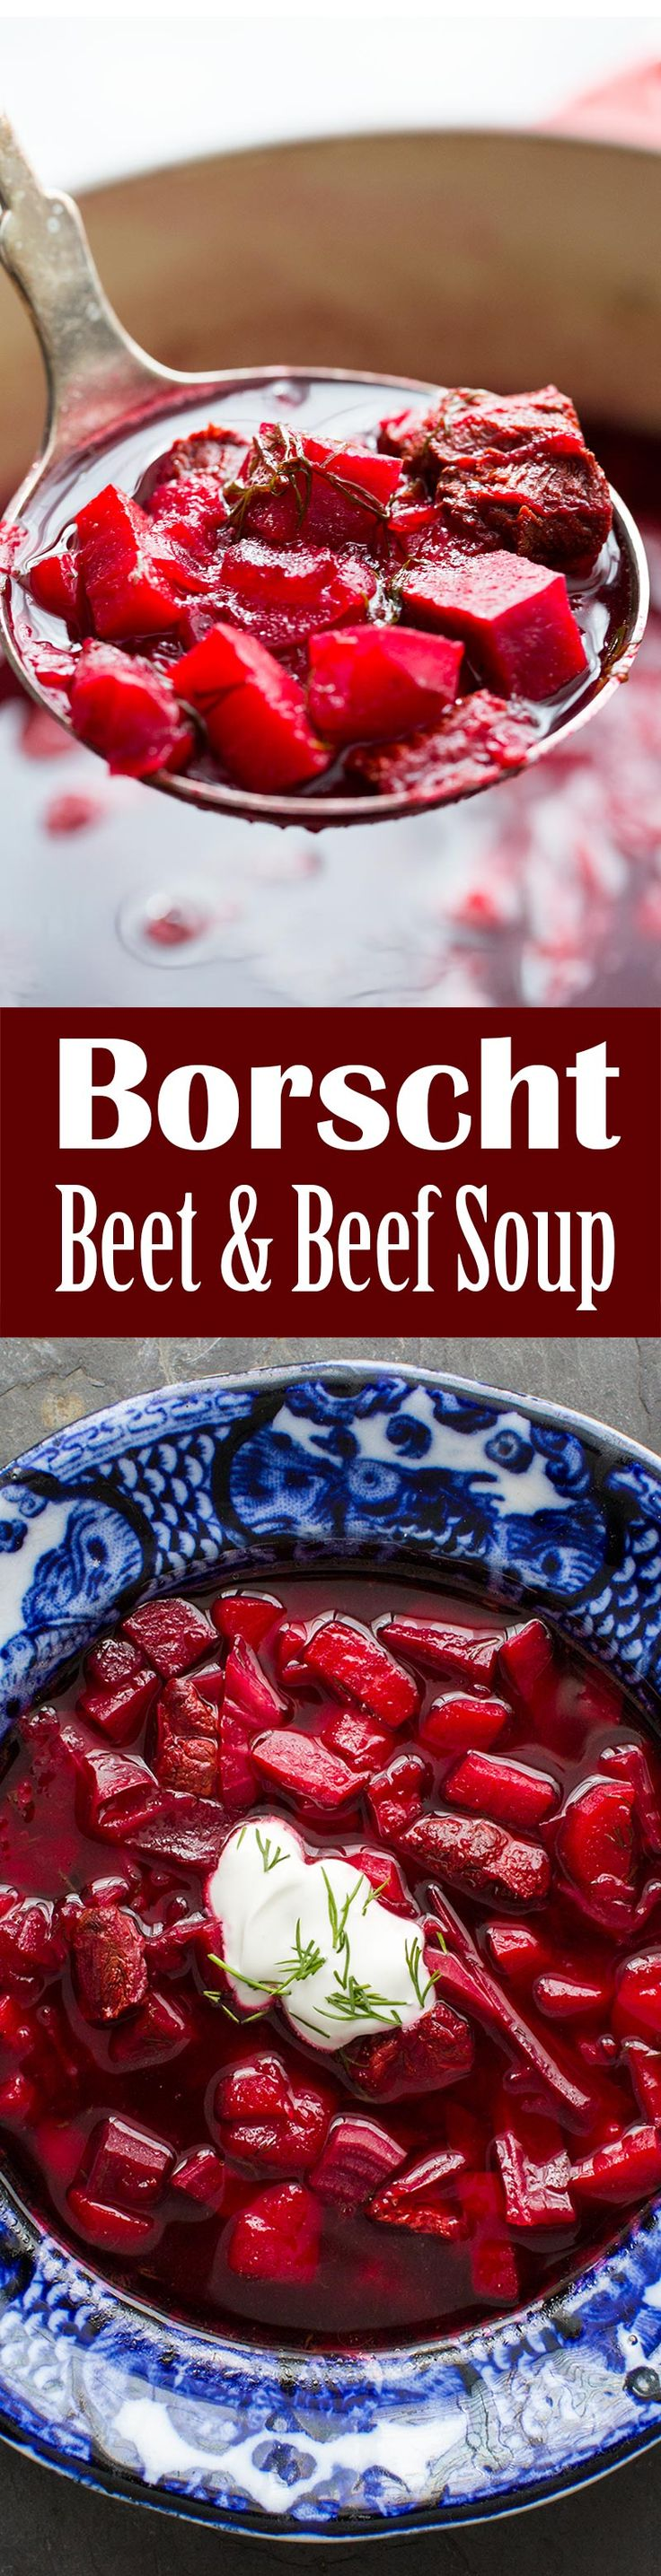 Delicious Borscht Soup! made with fresh red beets, beef shank, onions, carrots, potatoes, cabbage, dill, and sour cream.